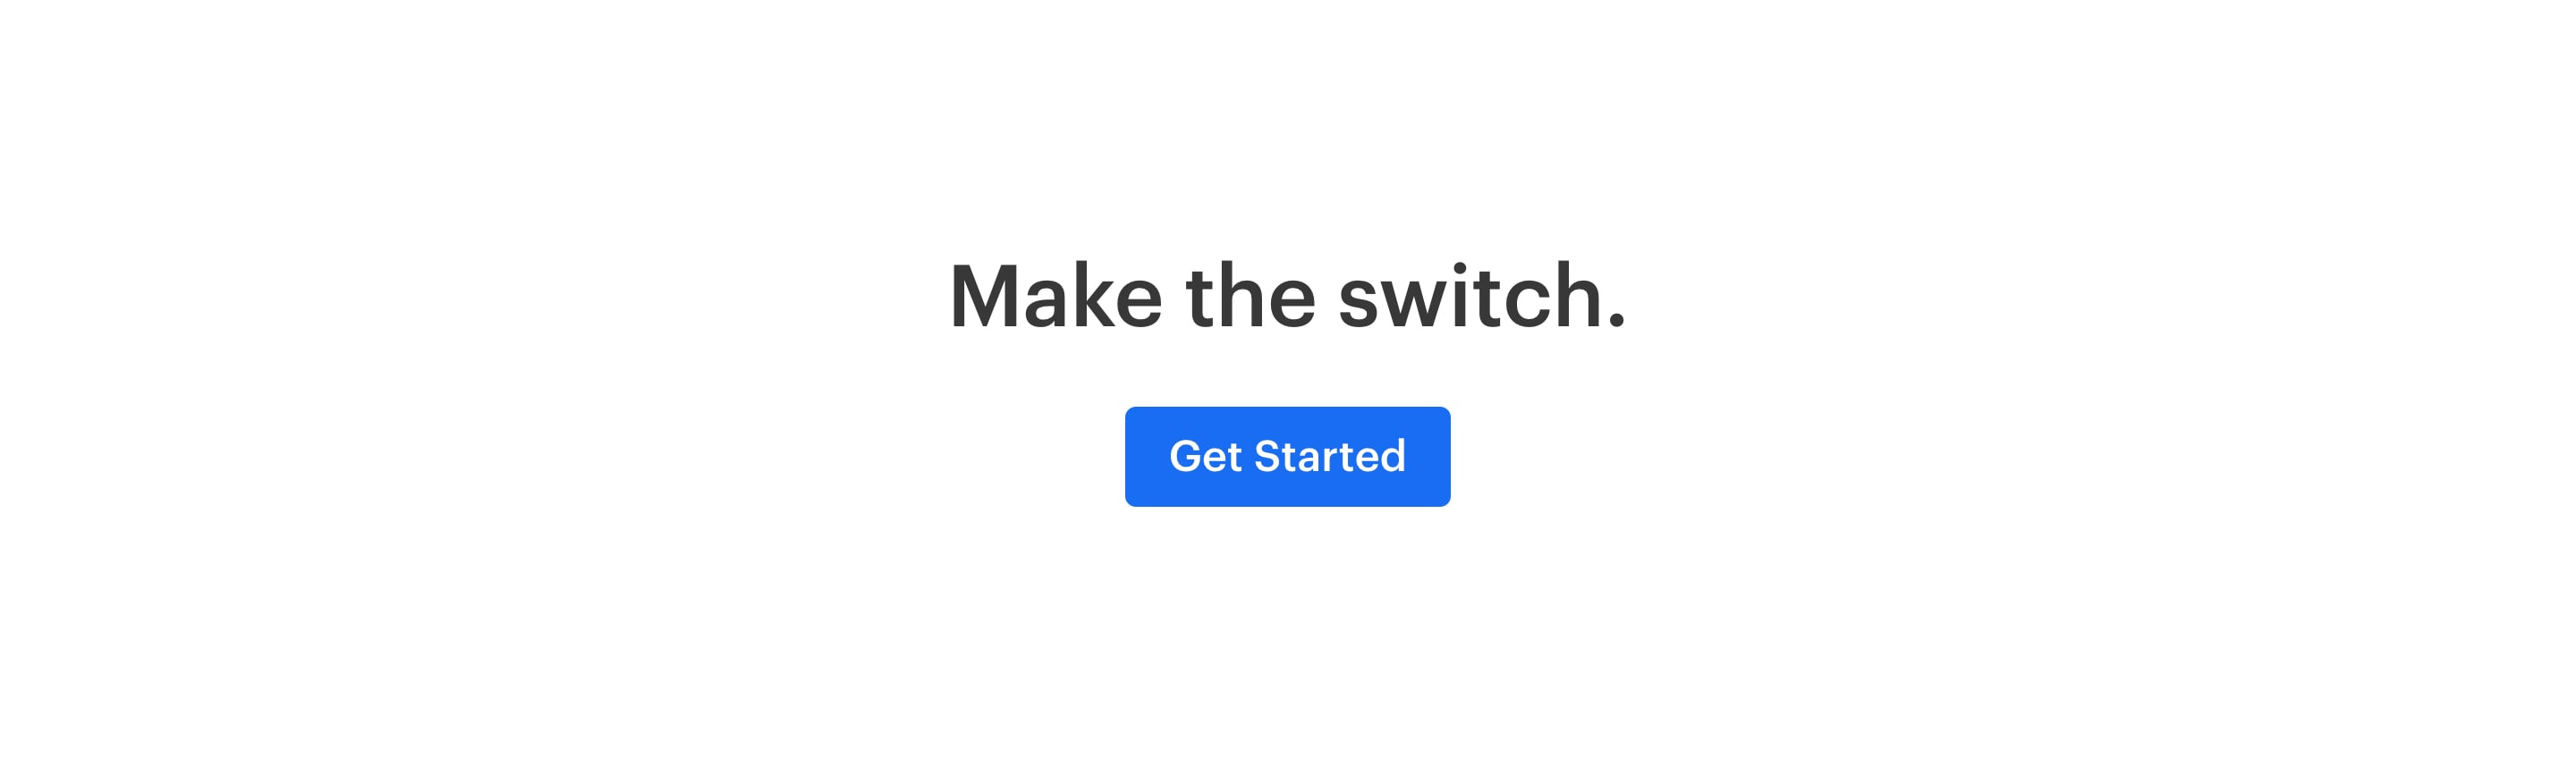 Minimal CTA Block with Tagline and Button